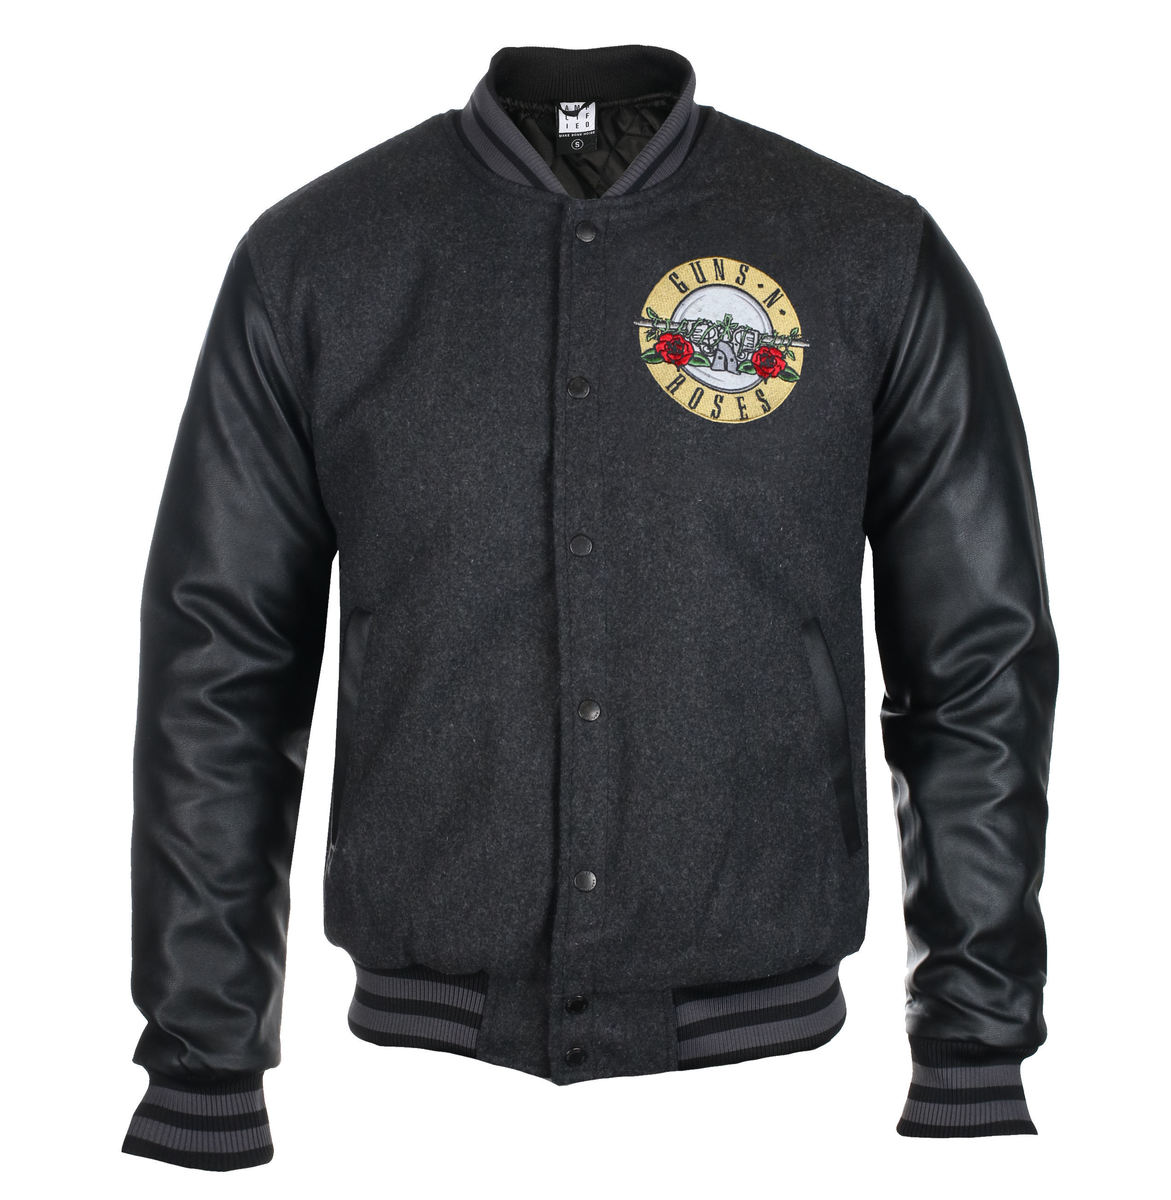 bunda jarněpodzimní AMPLIFIED Guns N Roses VARSITY XS